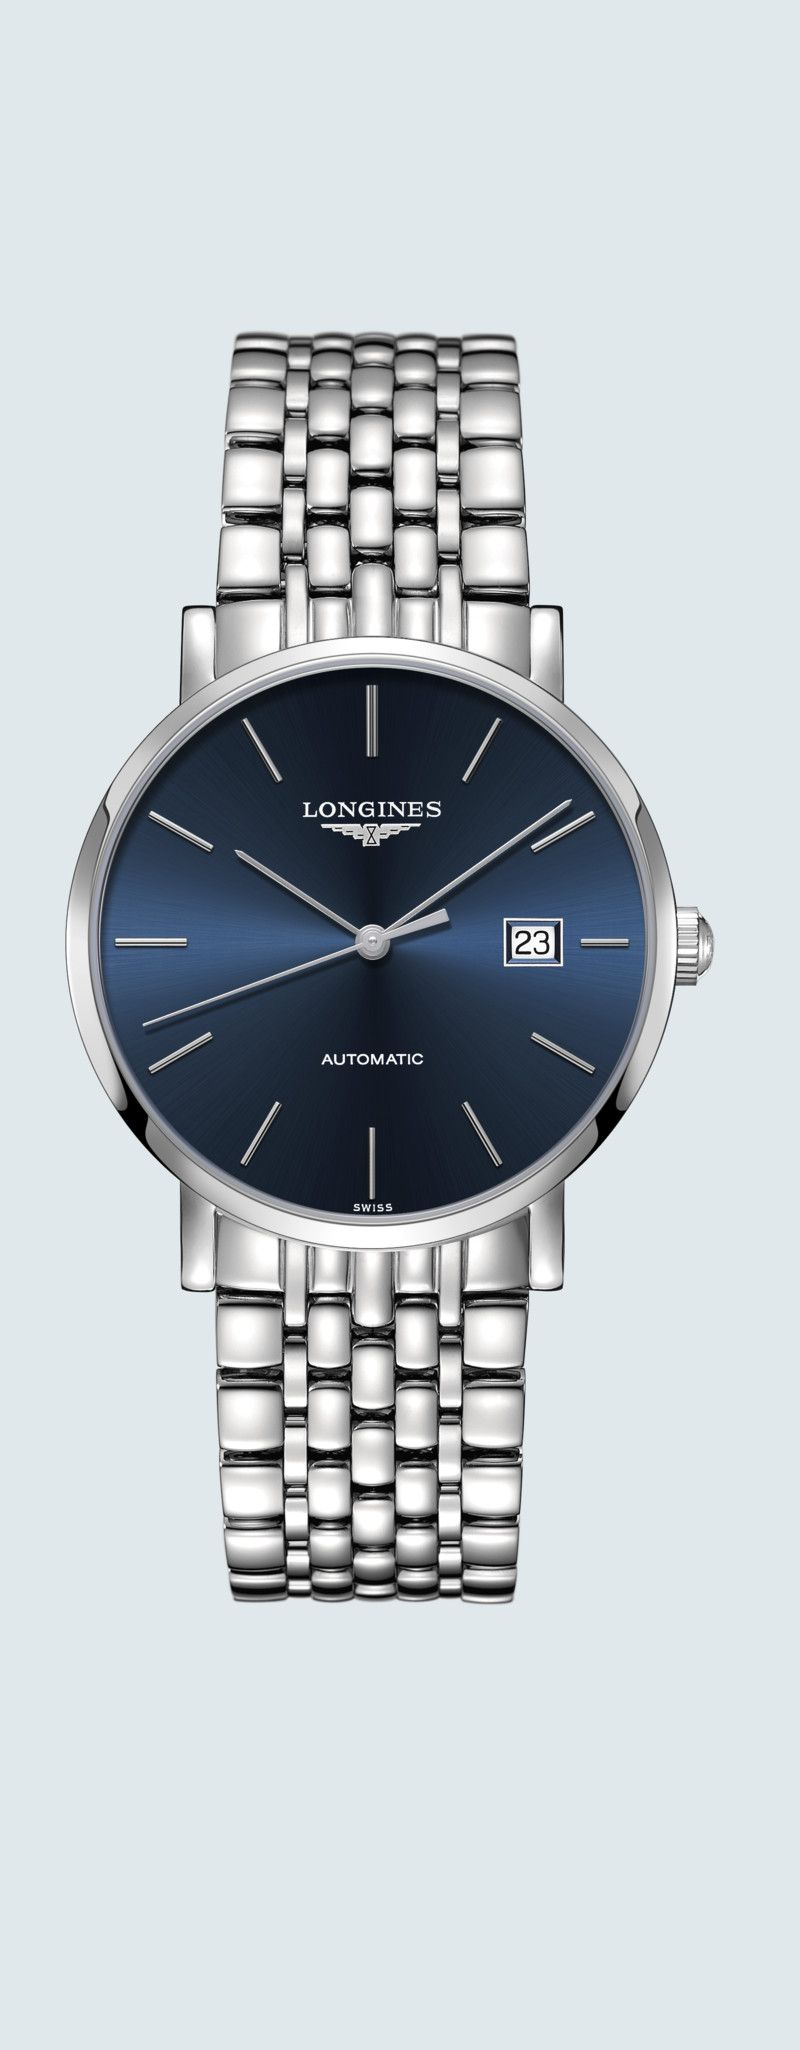 39.00 mm Stainless steel case with Sunray blue dial and Stainless steel strap - case zoom view